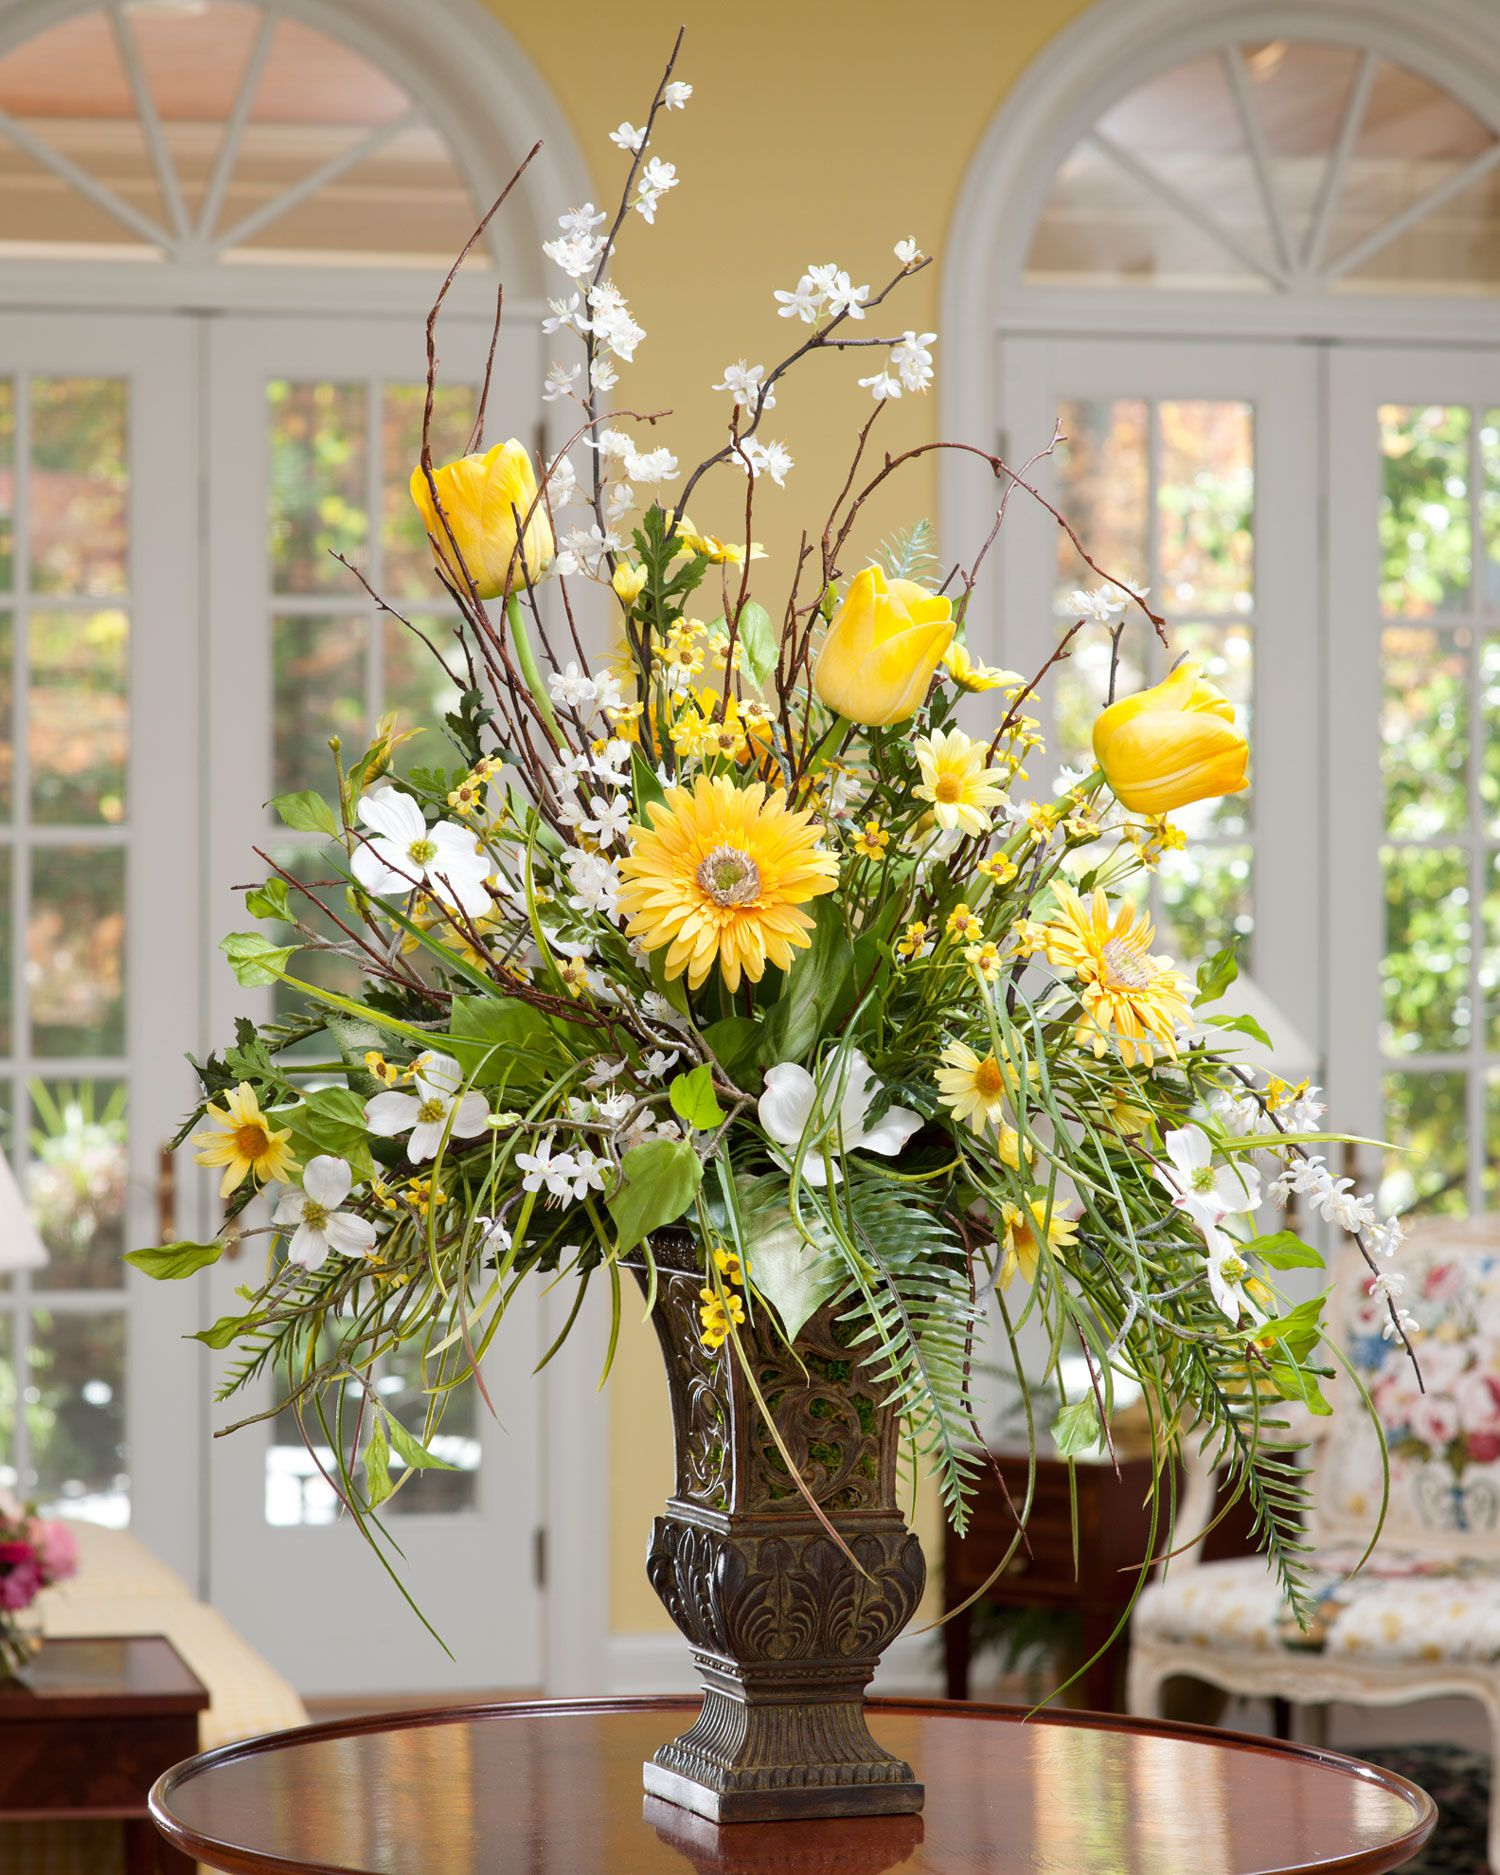 Fake Floral Arrangements For Home Flower Arranging In A 12 Quot Tall Vase Home Shop At Home